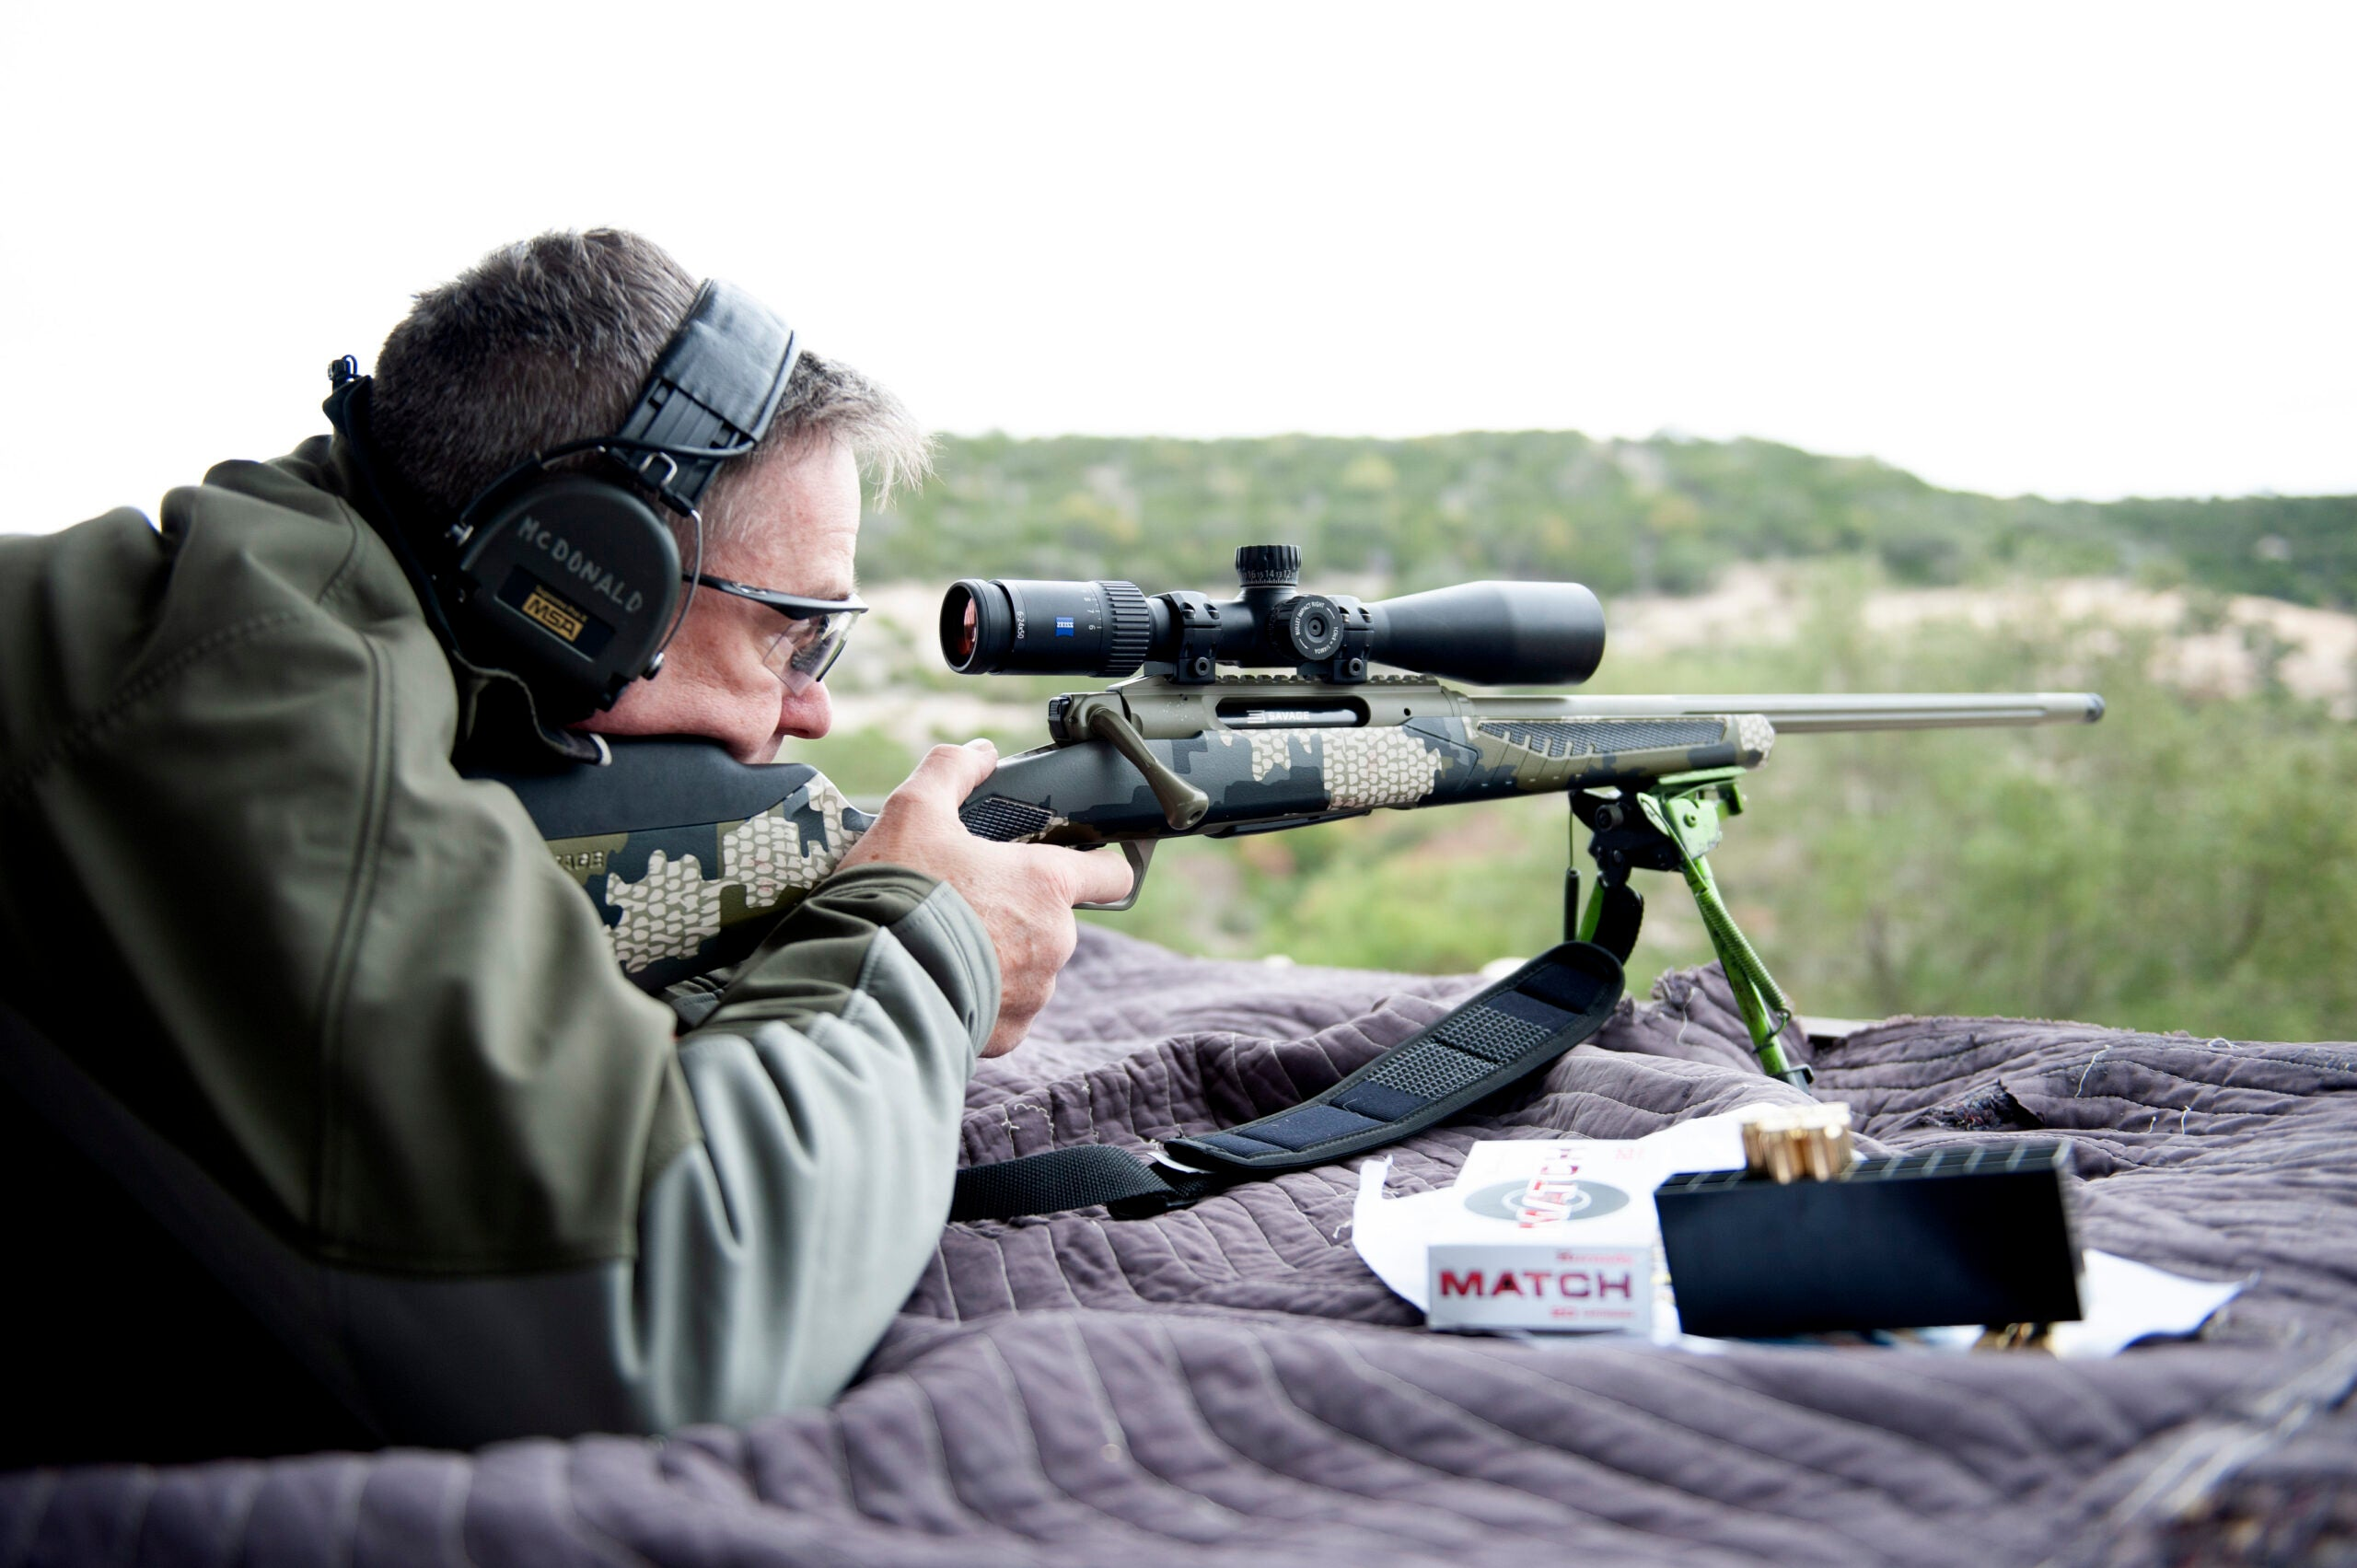 A man with glasses and ear protection lying prone behind a camo rifle on a shooting blanket in rugged country.